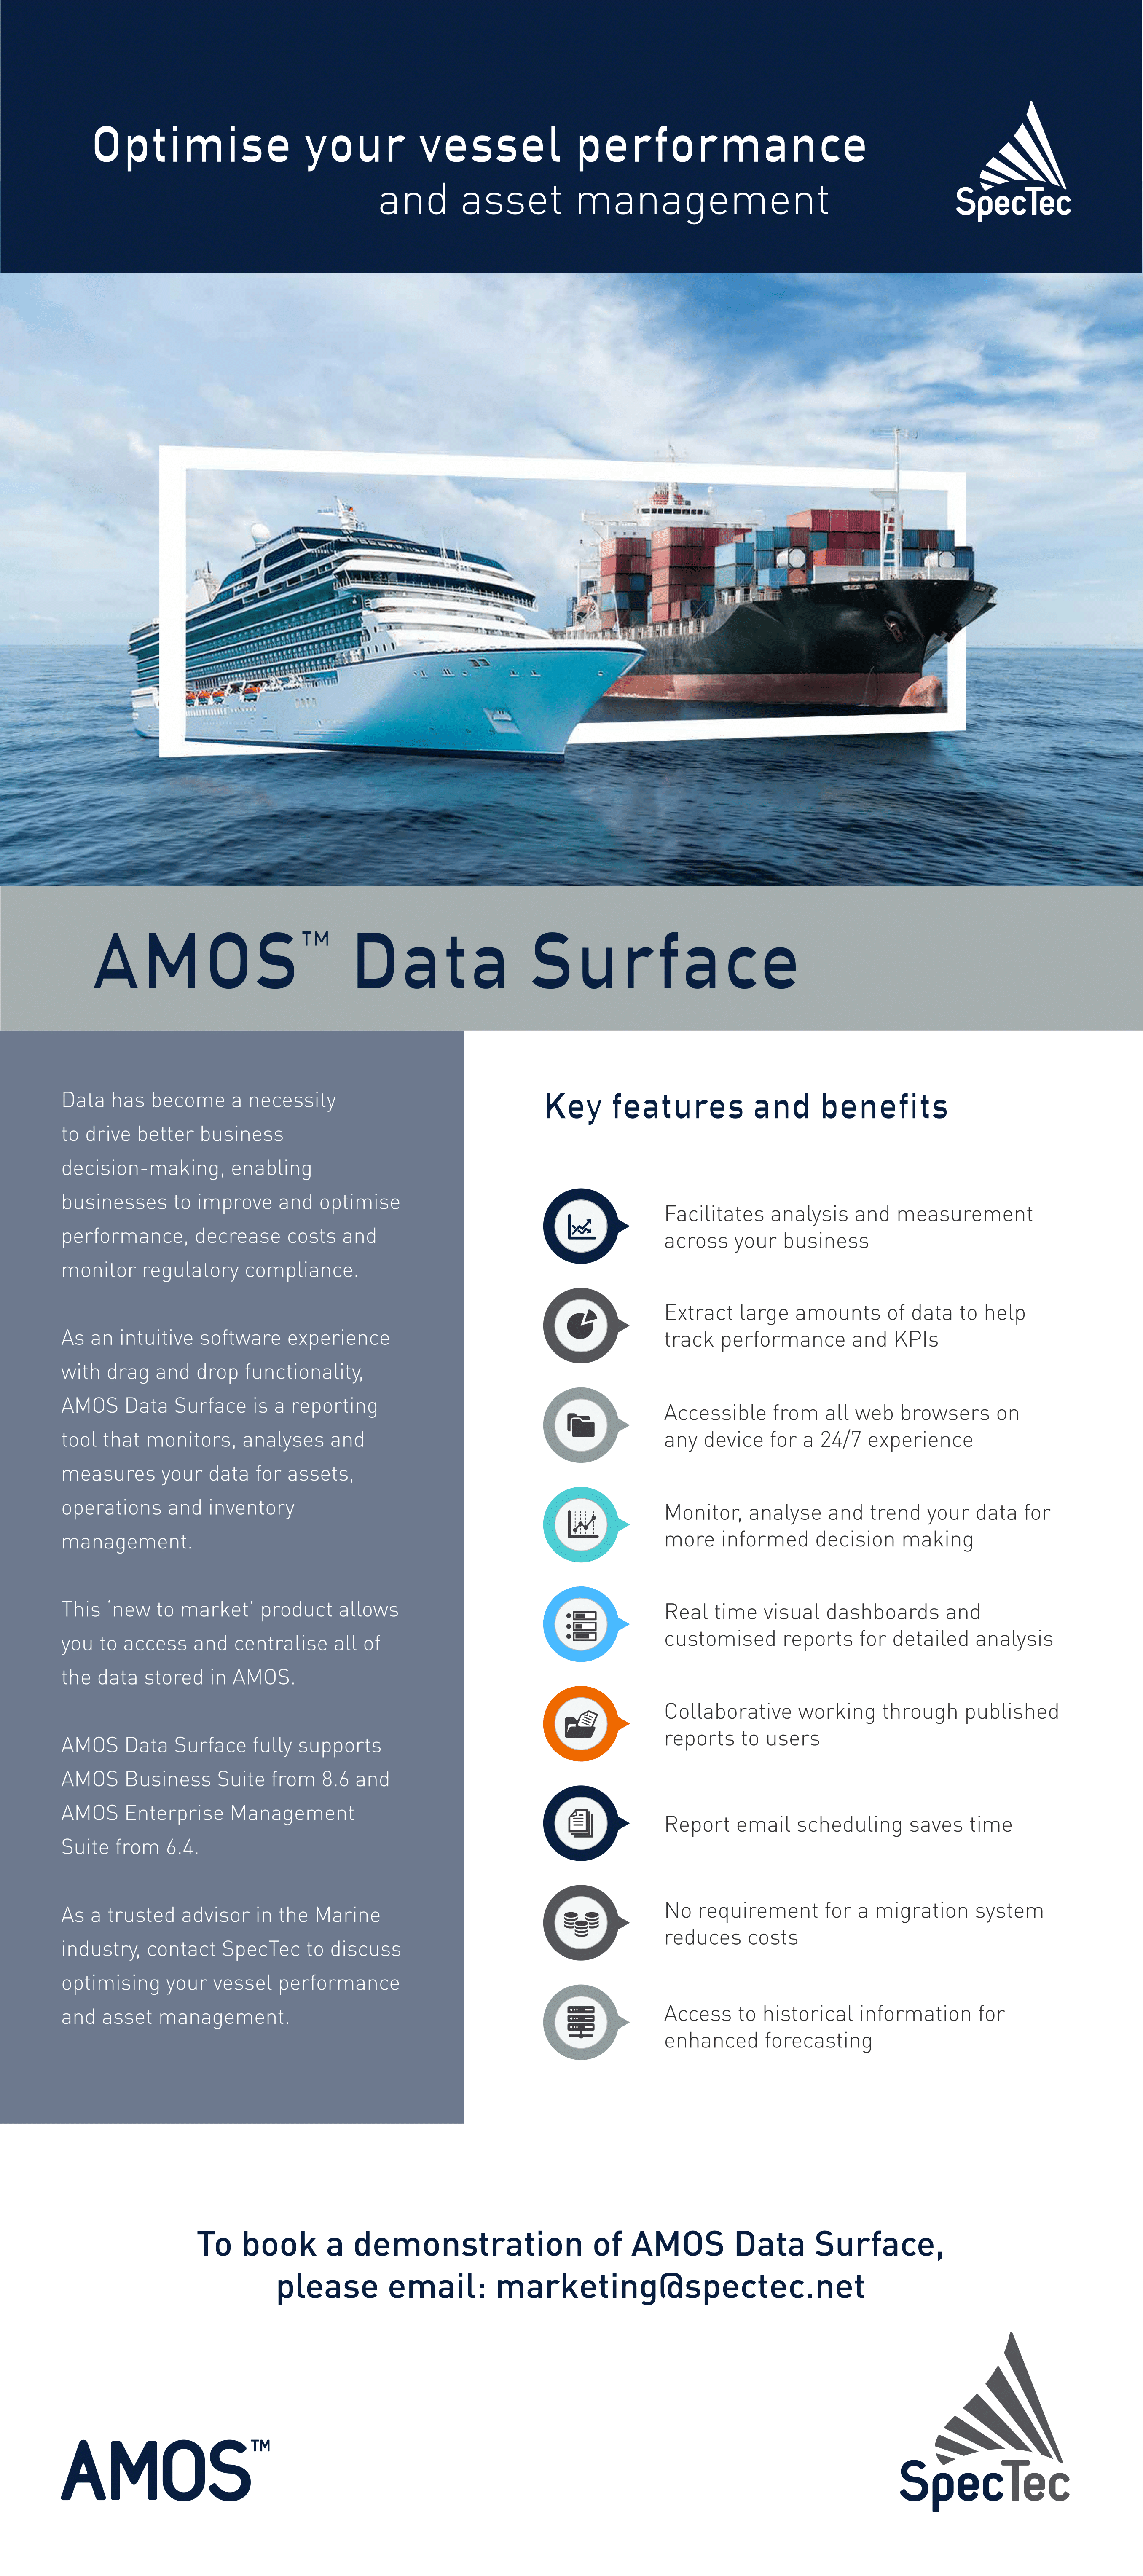 The Benefits of AMOS Data Surface